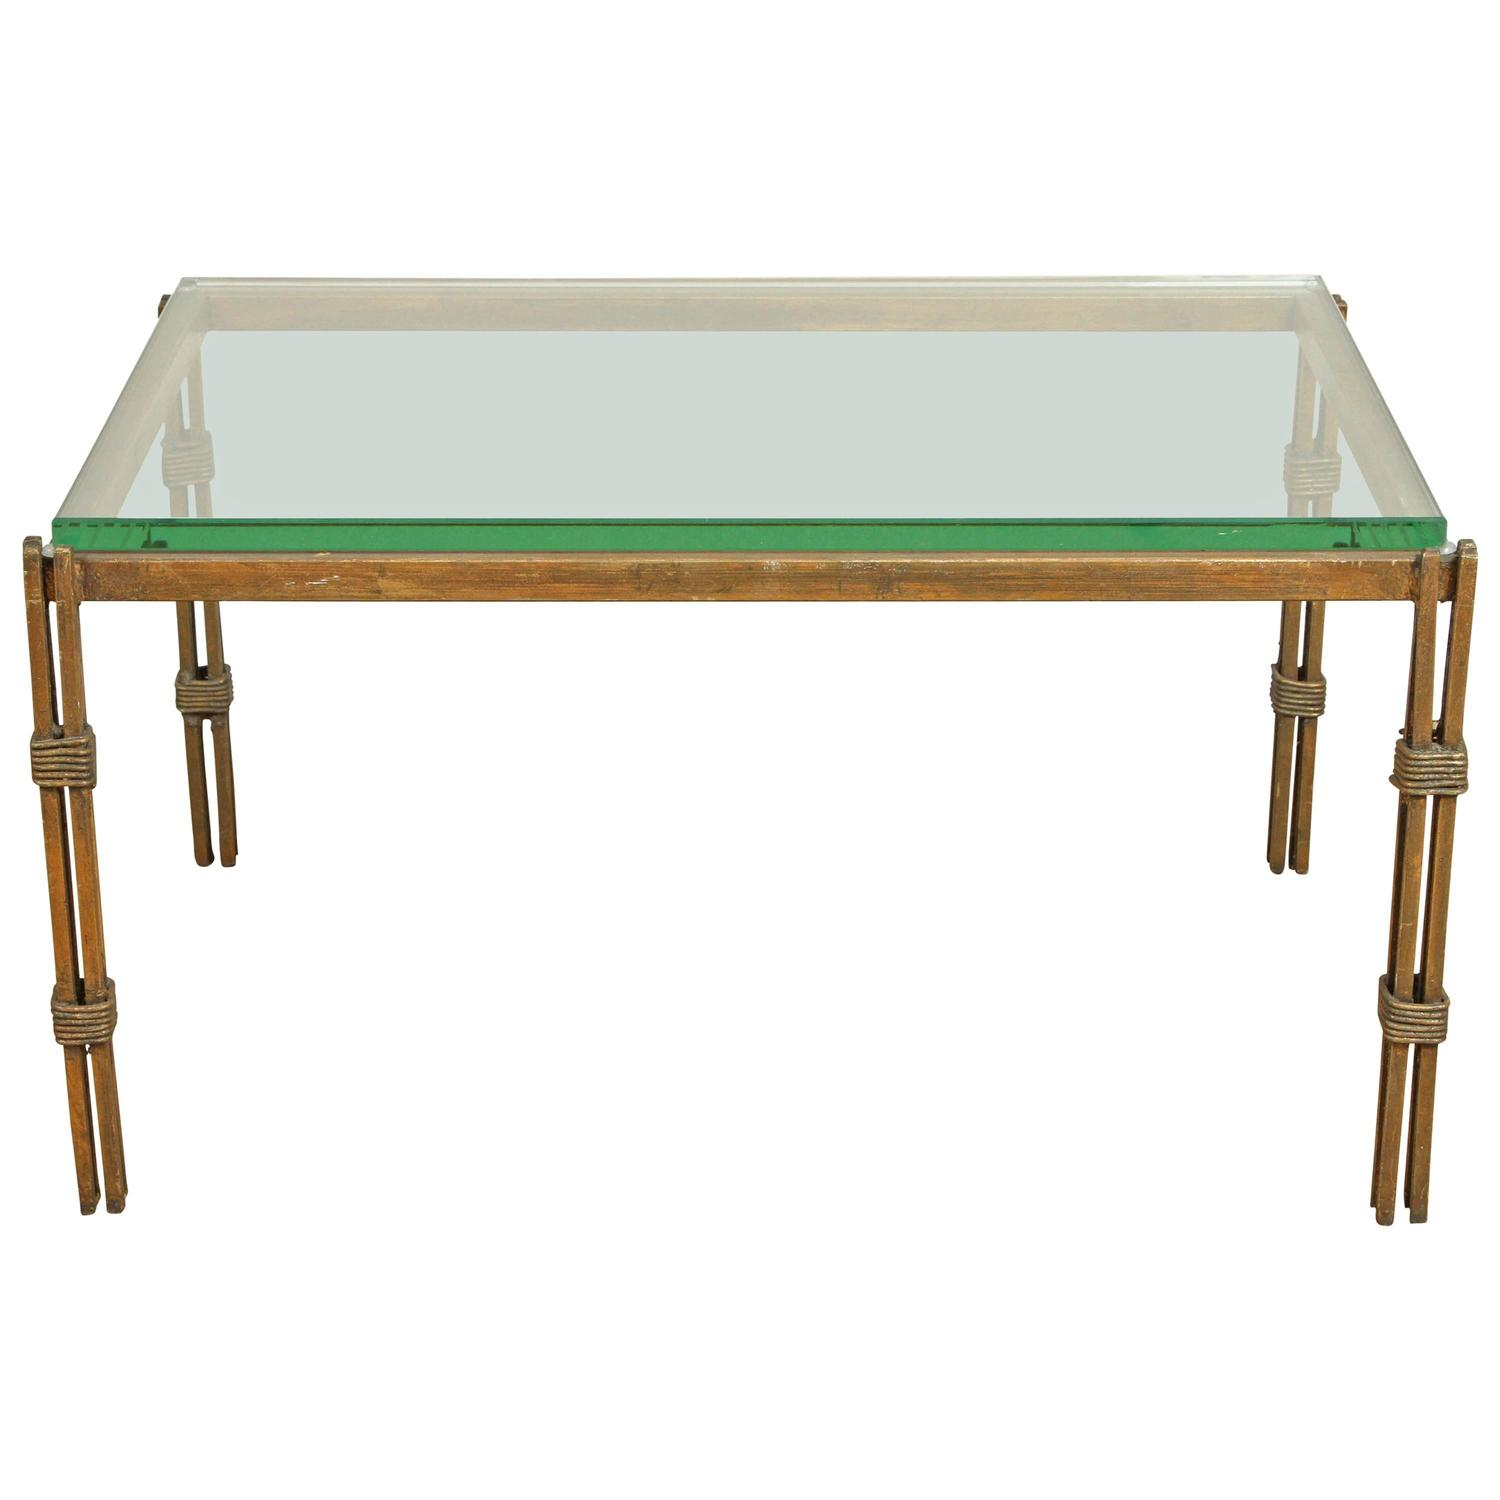 vintage wrought iron and glass table at 1stdibs. Black Bedroom Furniture Sets. Home Design Ideas